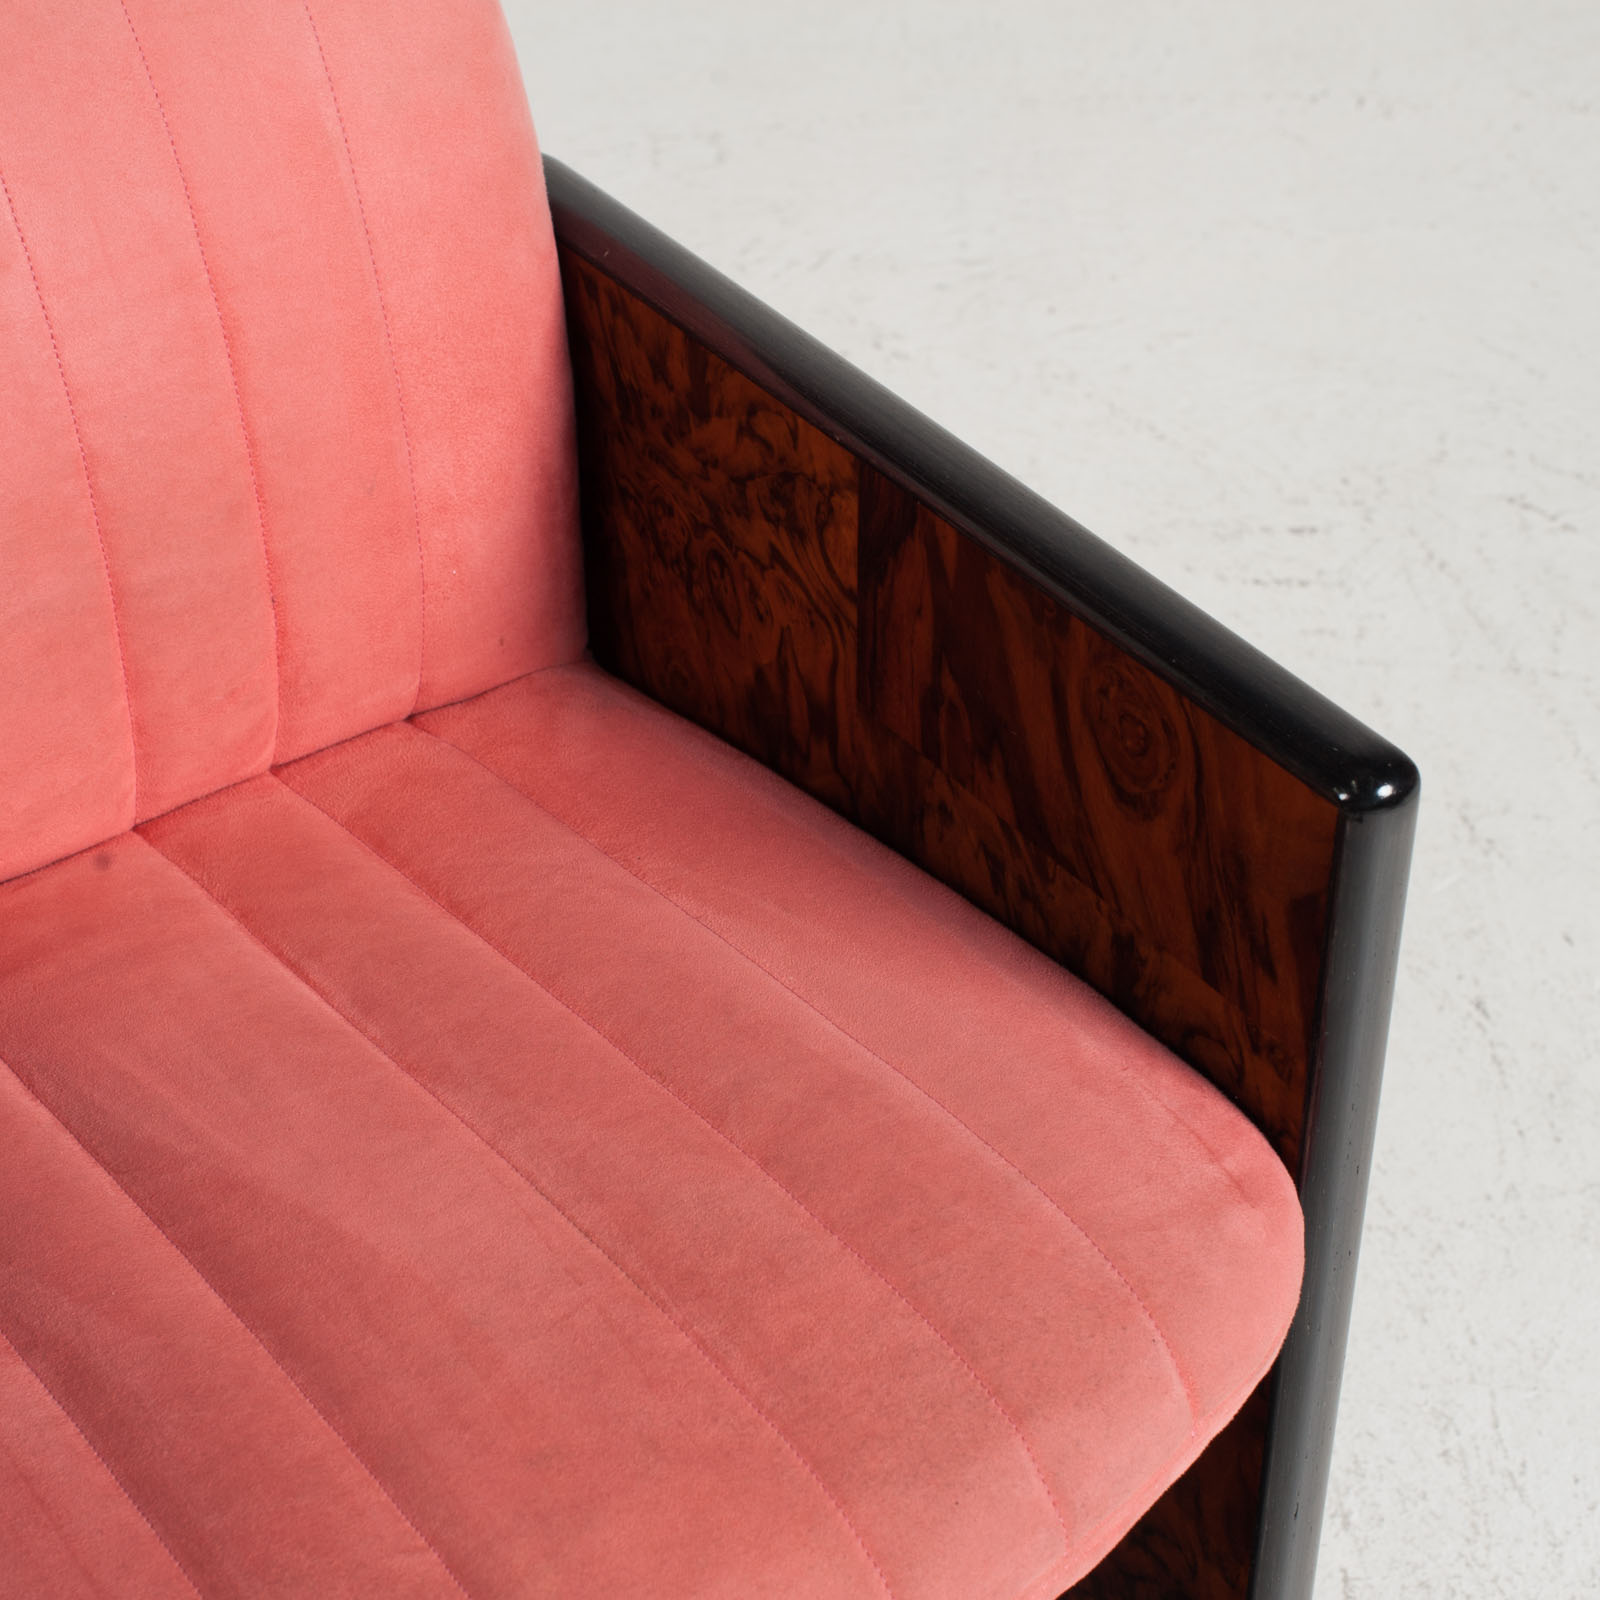 Set Of 8 Chairs By Kazuhide Takahama In Pink Upholstery 1950s Italy 06